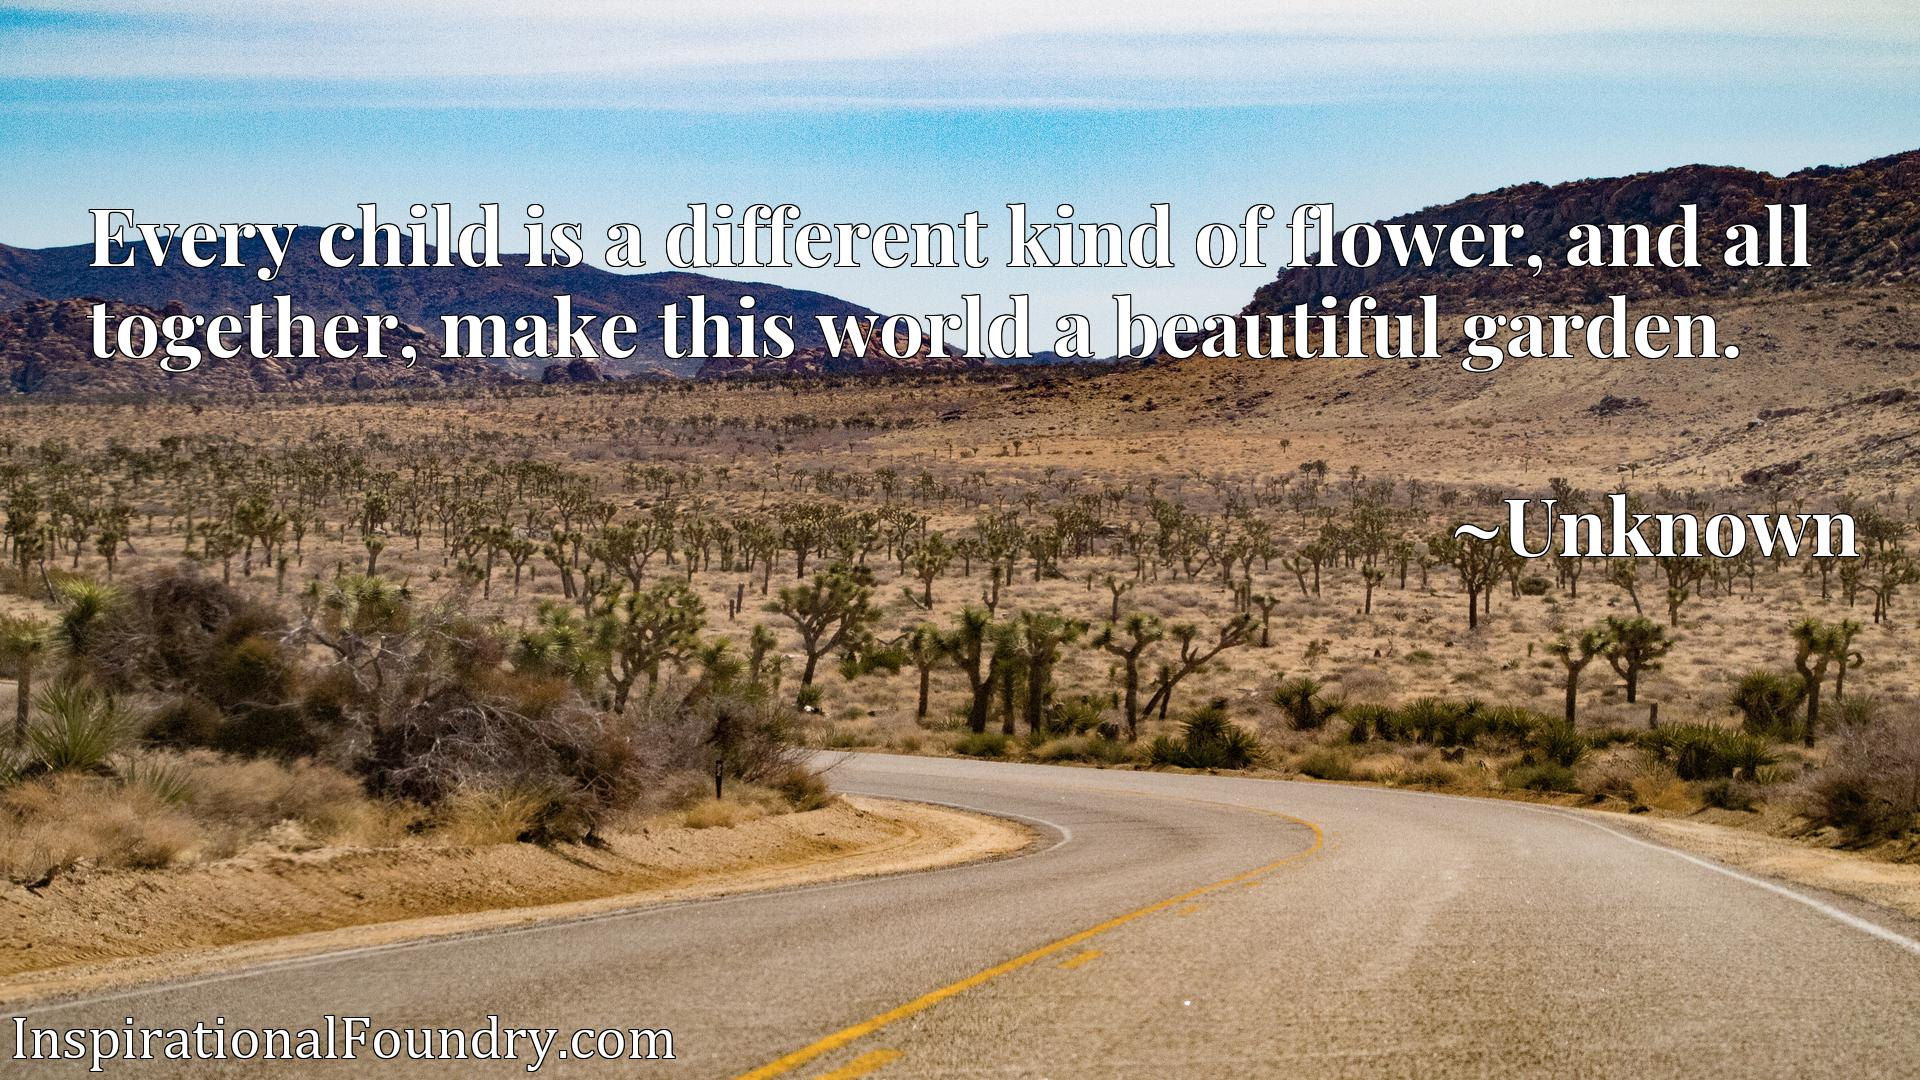 Quote Picture :Every child is a different kind of flower, and all together, make this world a beautiful garden.